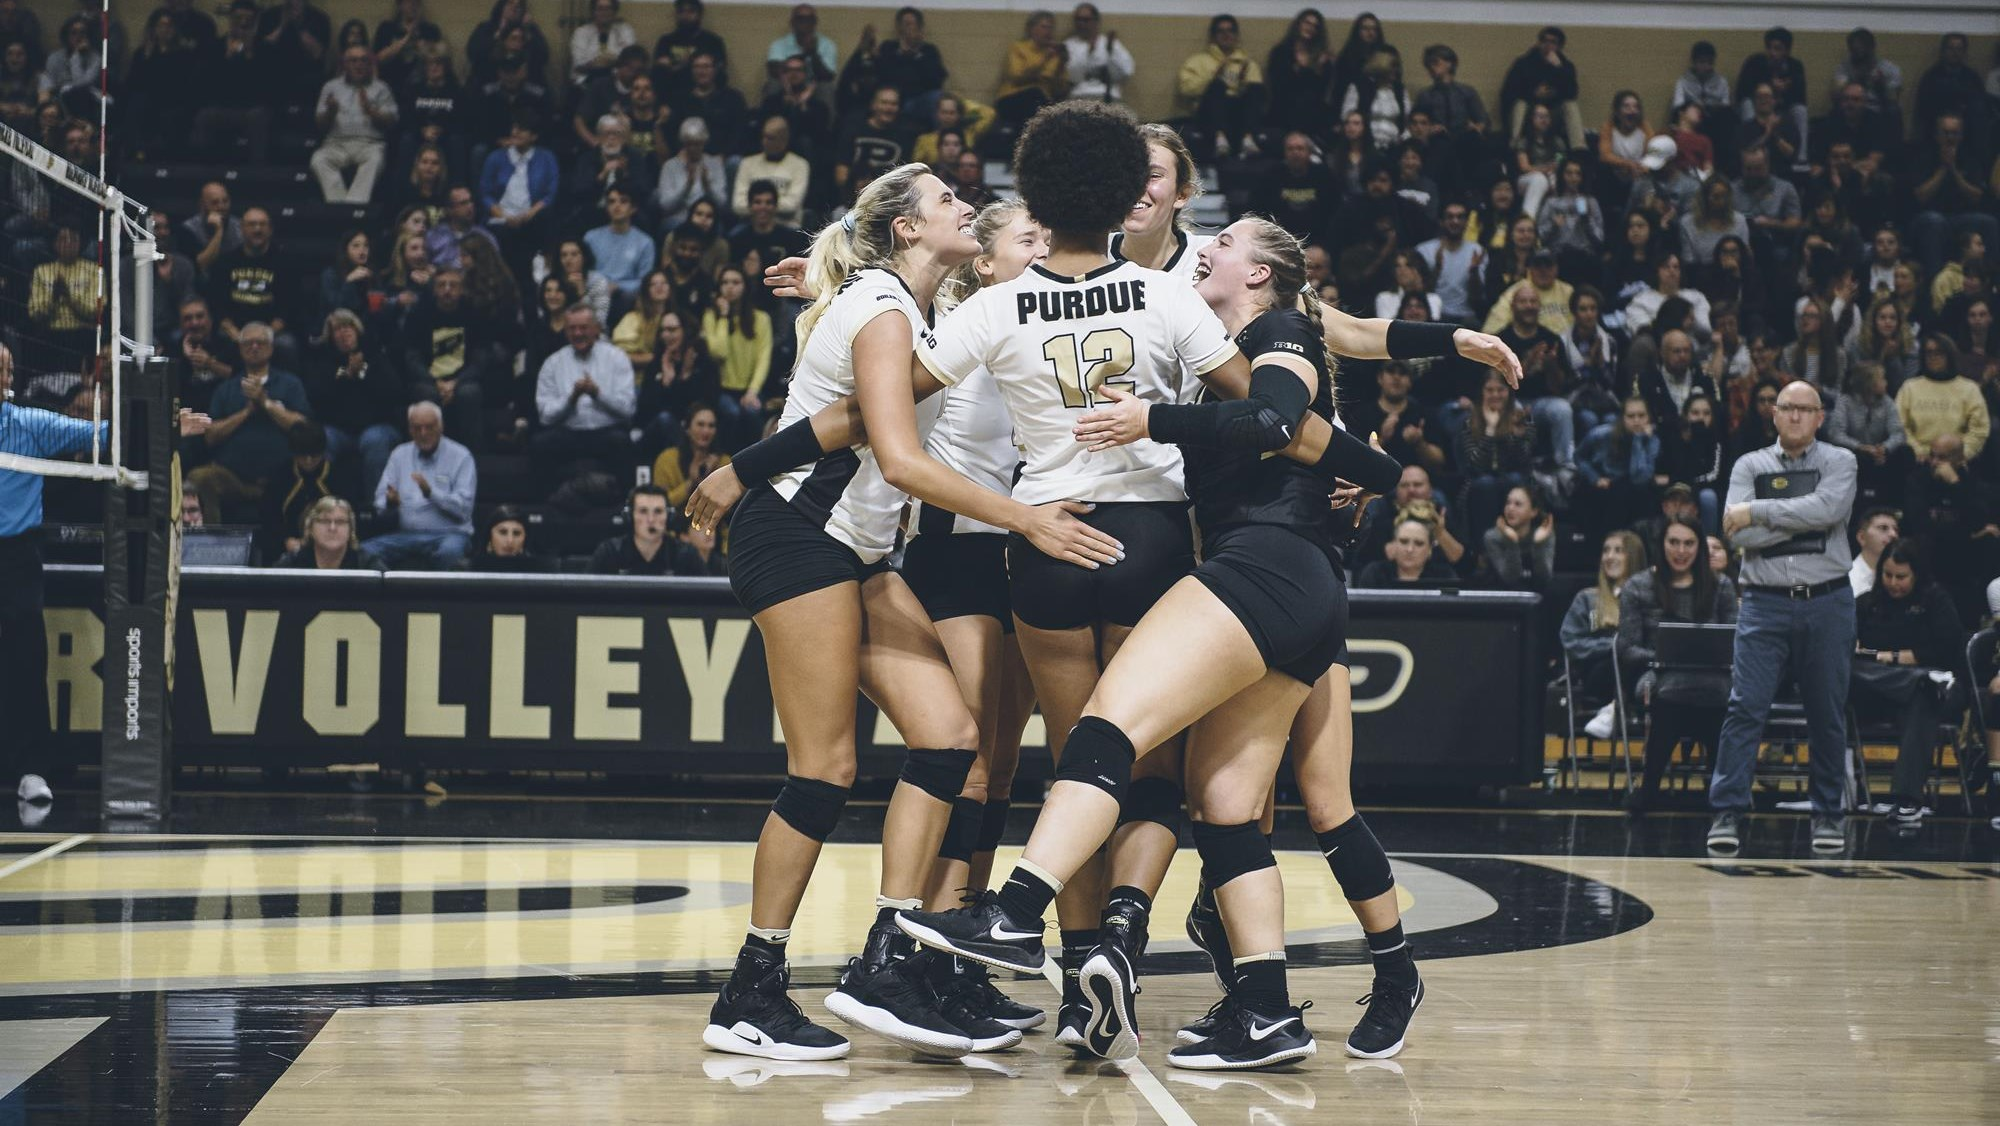 Purdue Volleyball Prepped For Ncaa Regionals In Waco Purdue University Athletics